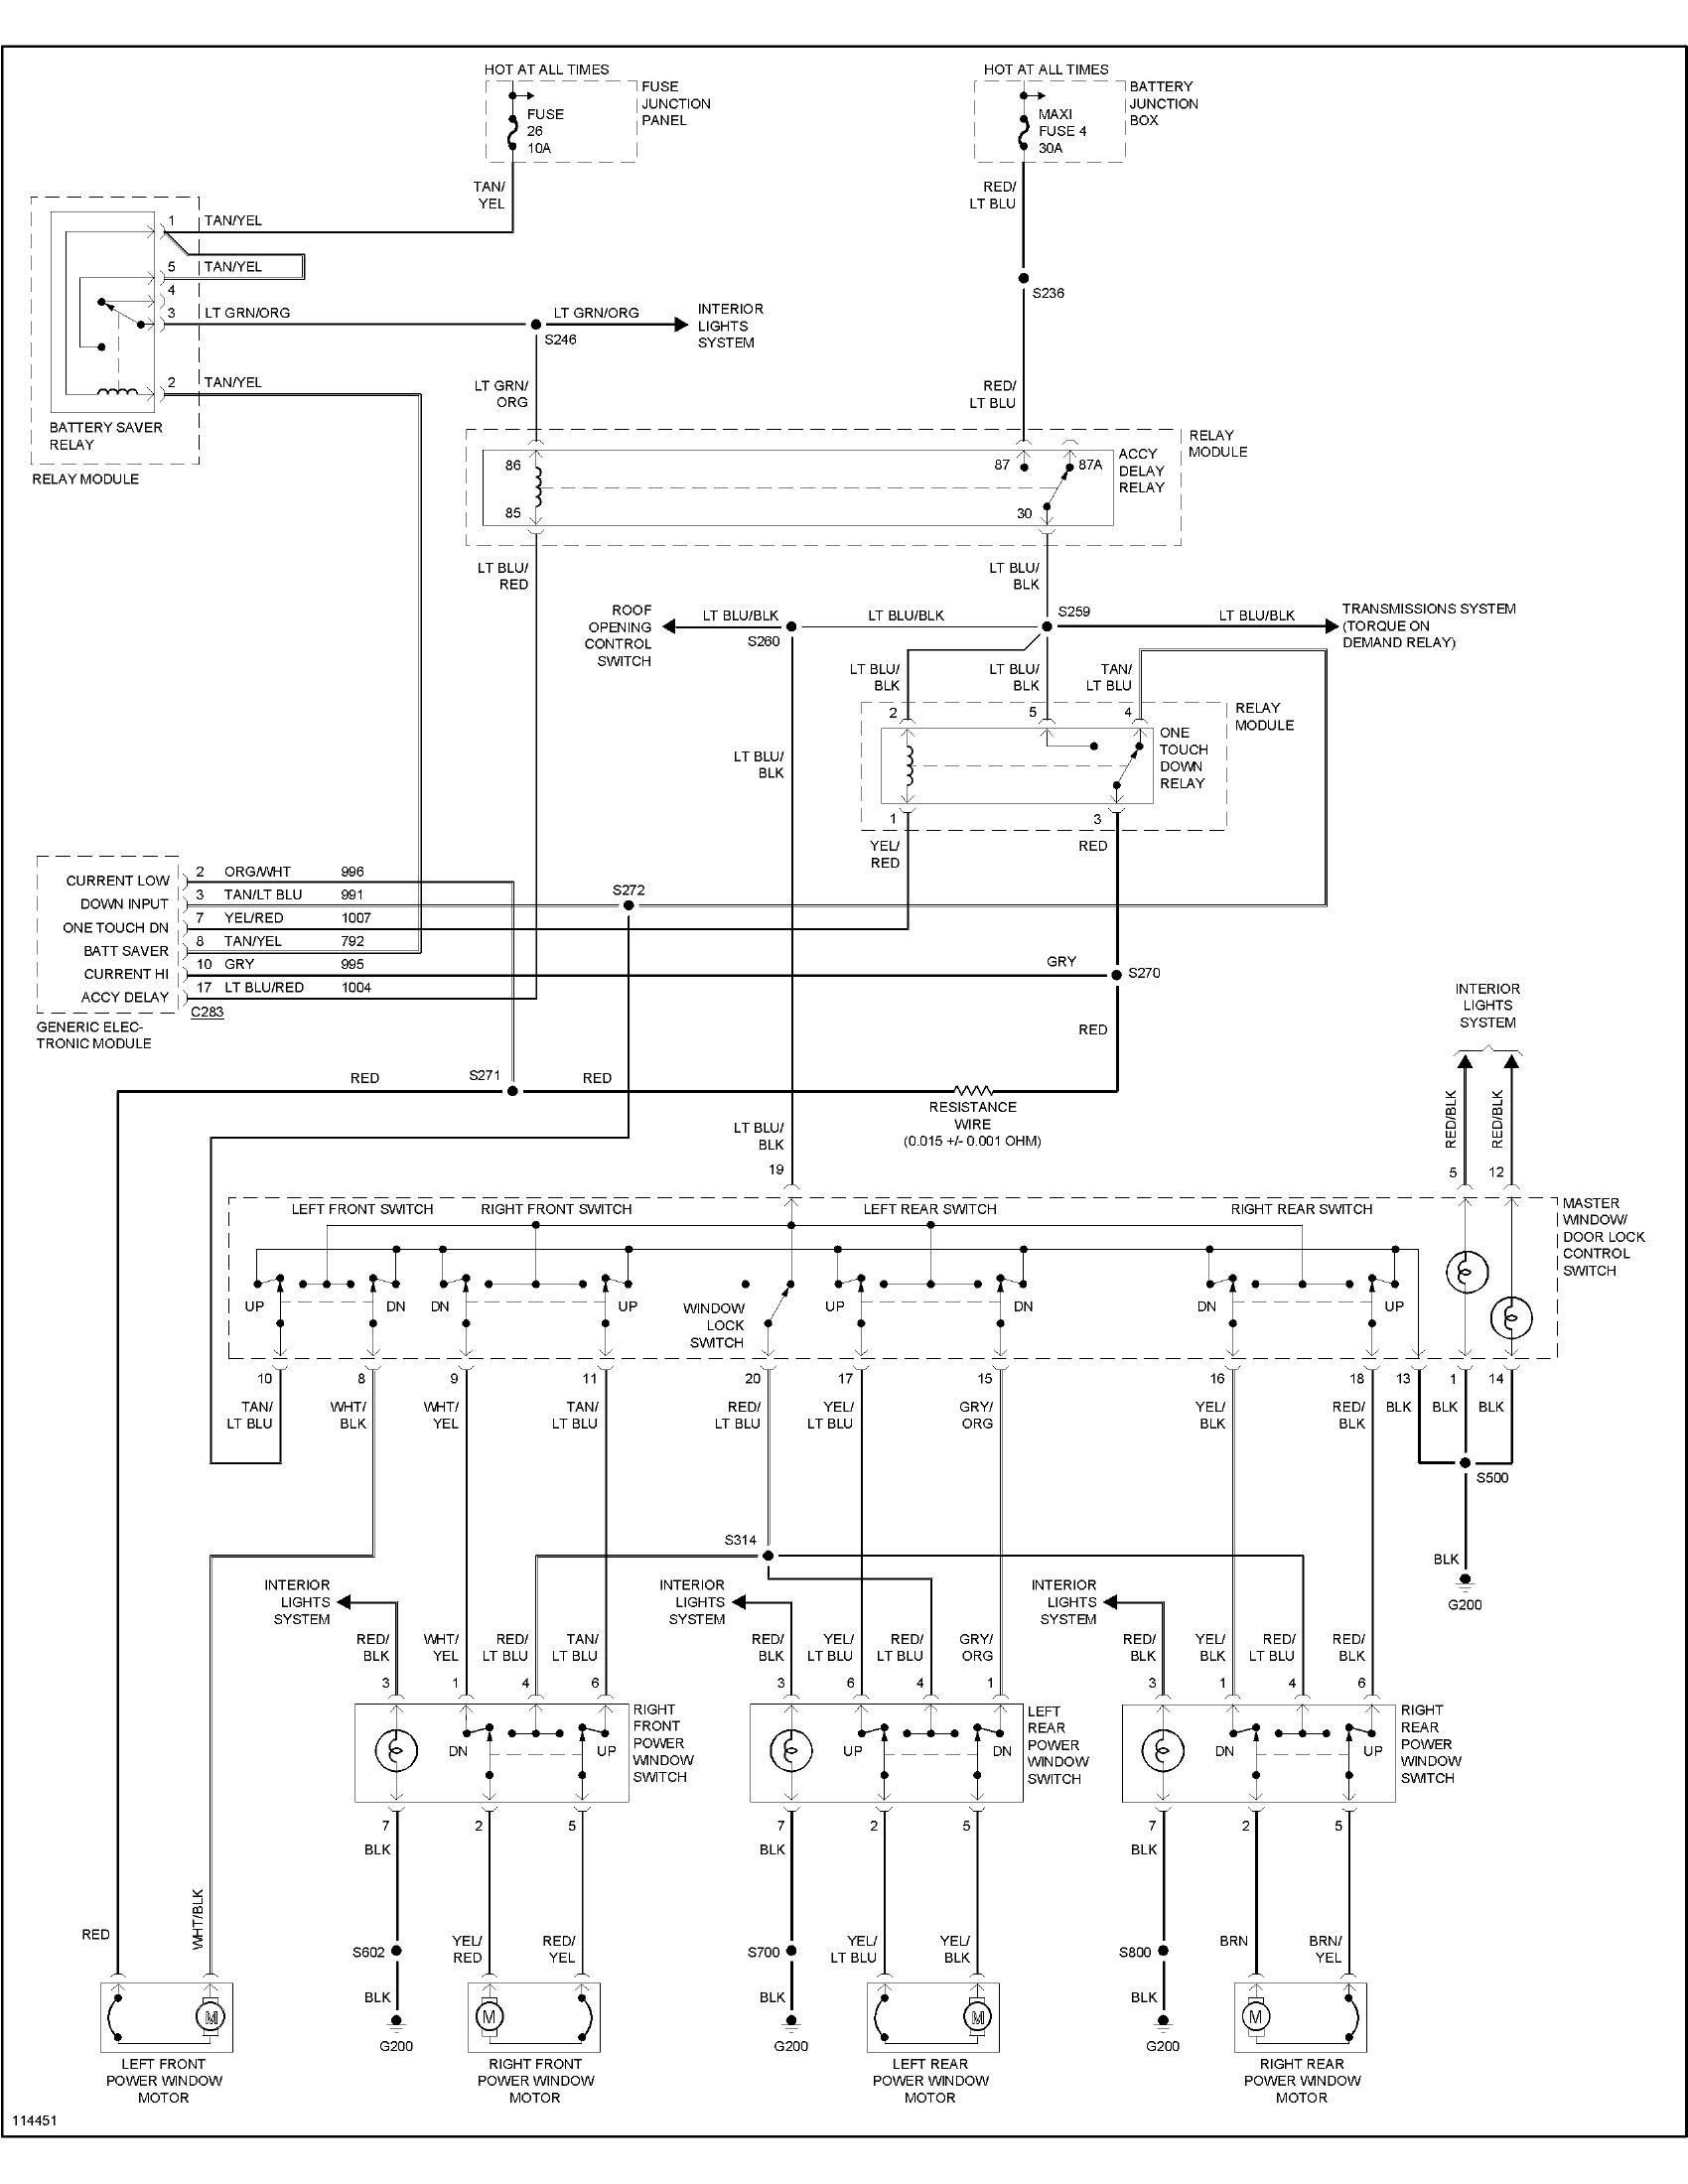 2007 ford Explorer Engine Diagram 05 ford Explorer Fuse Box Diagram Wiring  Diagram Of 2007 ford